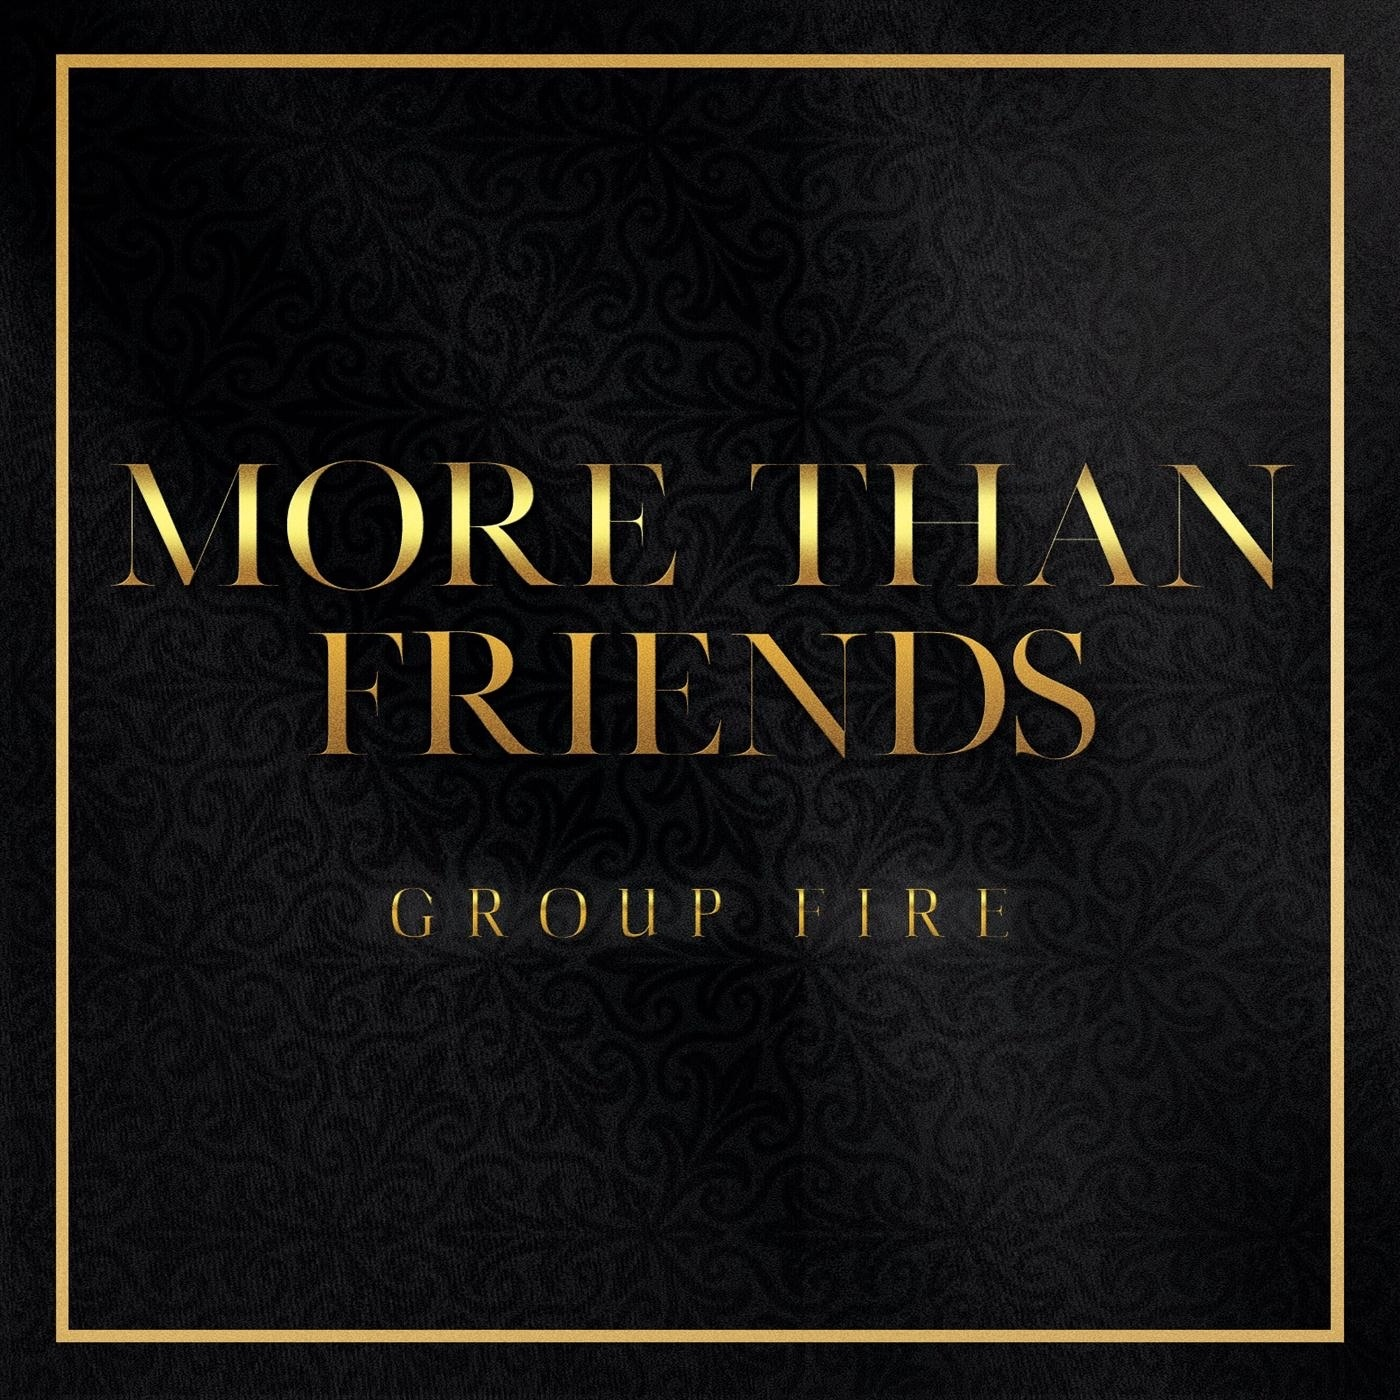 The Group Fire (More Than Friends - Single)